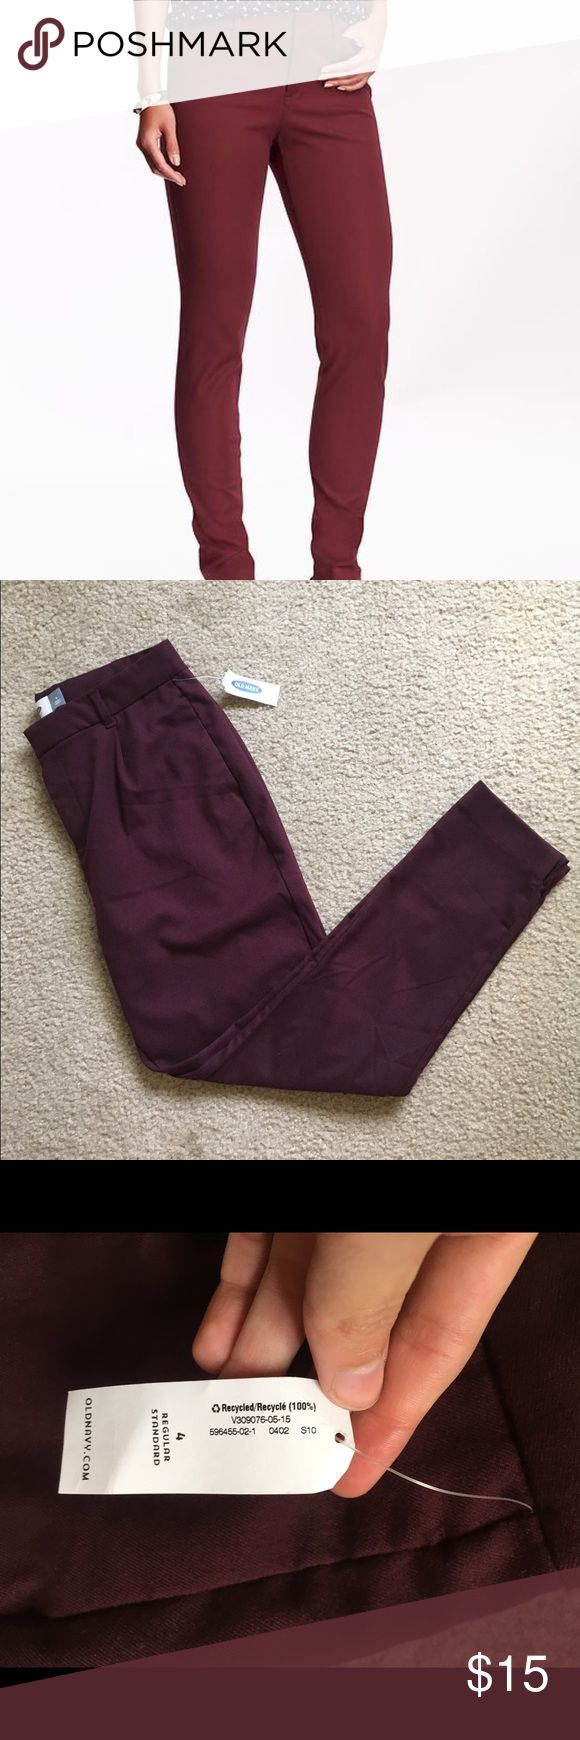 Berry Straight Leg Trousers Size 4 NWT burgundy colored slacks/trousers by Old Navy. No flaws, in perfect condition. Straight leg. Zips up in the front. I ship daily (excluding Sundays and holidays) and I store items in a smoke free, pet free environment. Open to offers; bundles discounted! Old Navy Pants Straight Leg